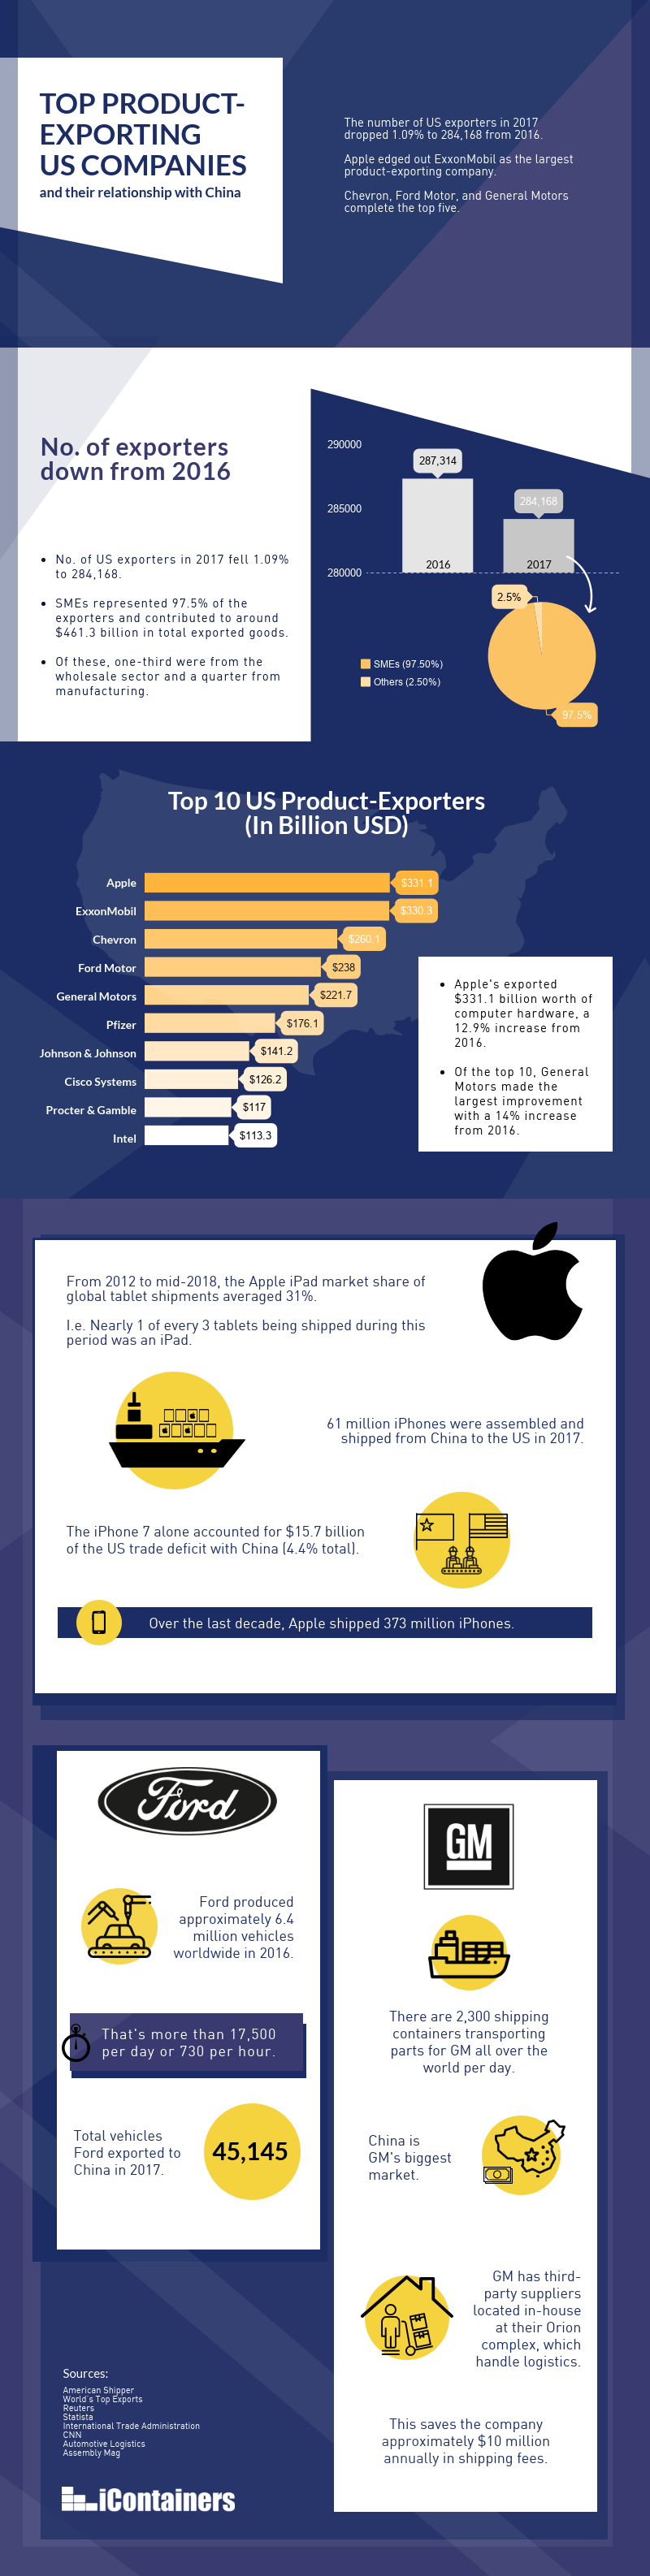 Top product-exporting US companies and their relationship with China infographic